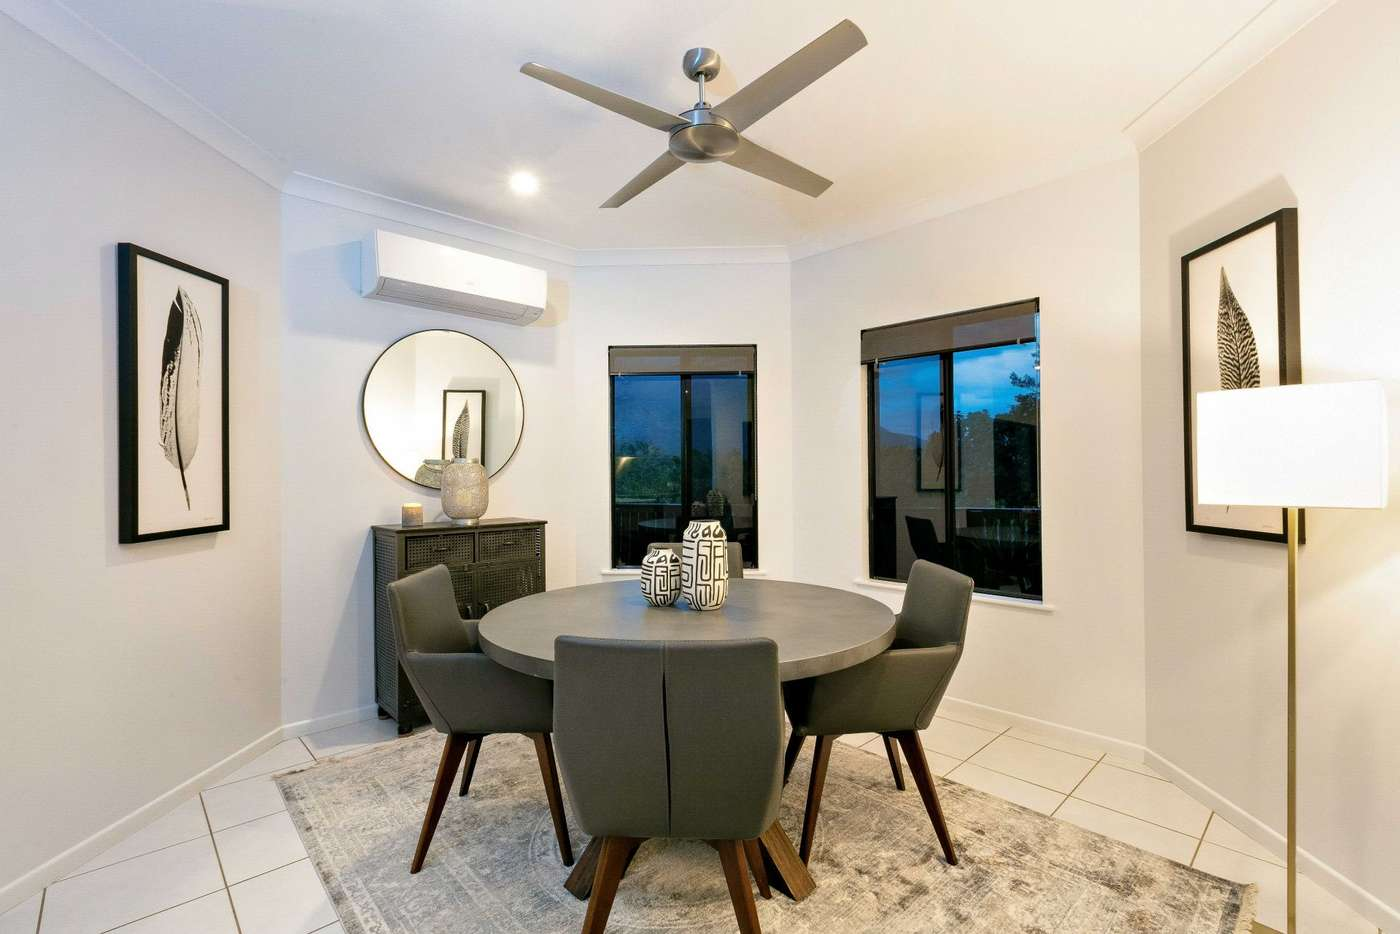 Seventh view of Homely house listing, 2 Stapleton Close, Redlynch QLD 4870